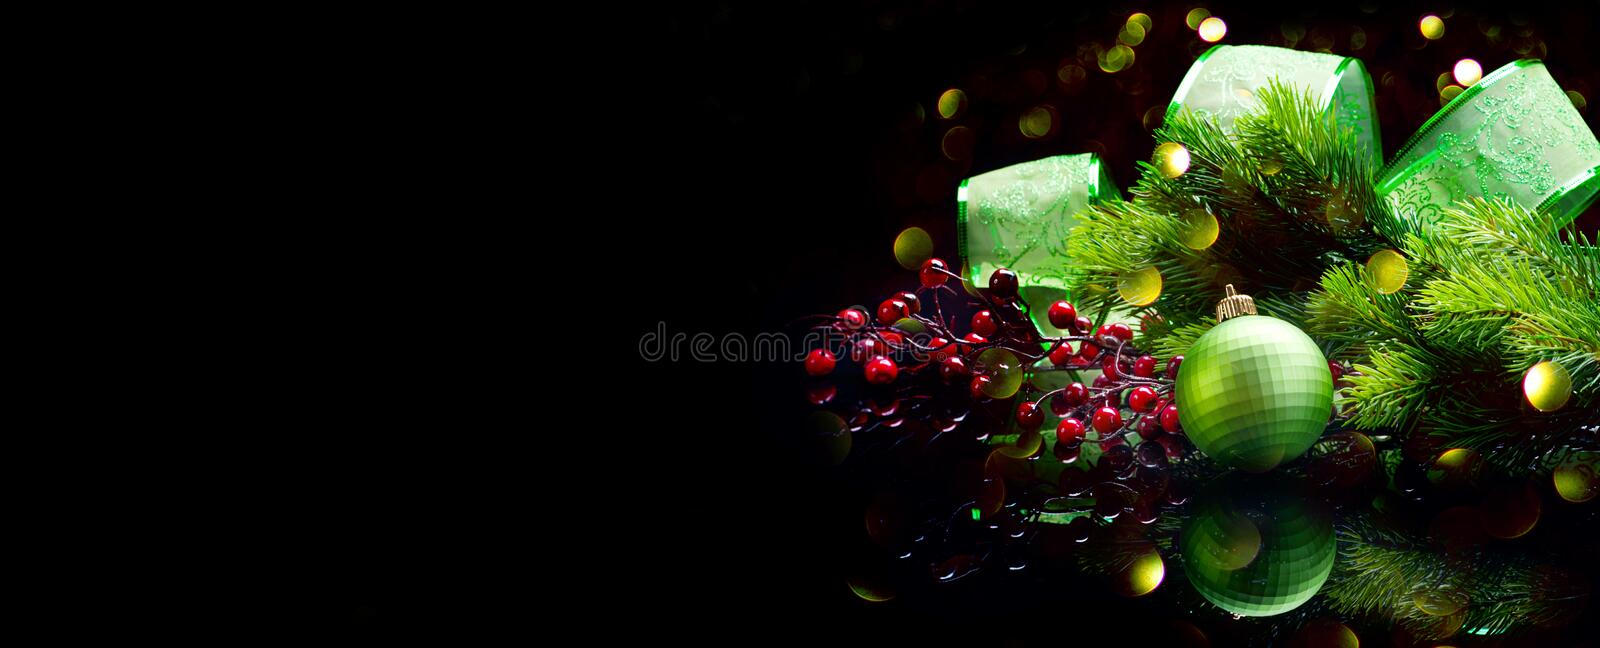 Christmas Decoration isolated on black. Wide screen backdrop. Border art design with holiday baubles stock photo